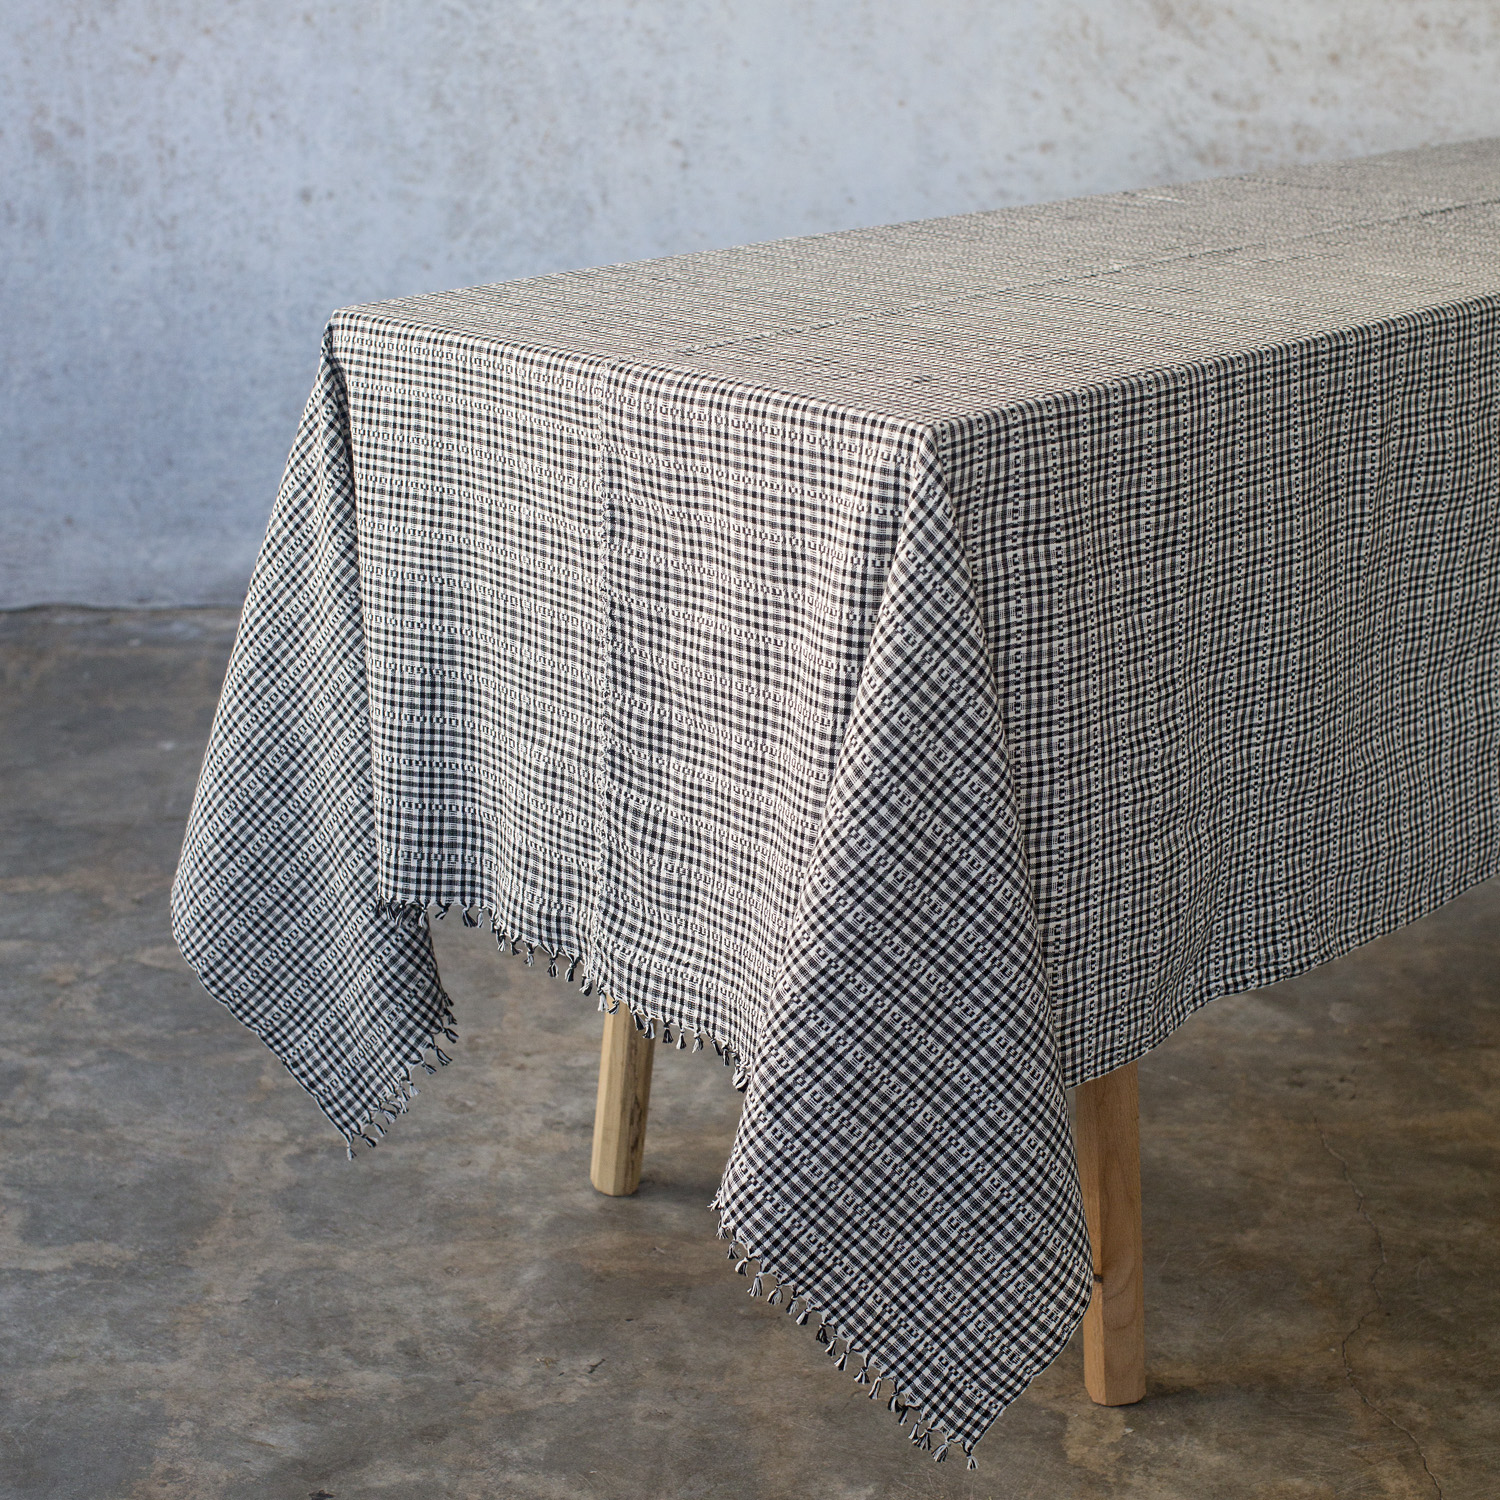 Soho Tablecloth $186 and up